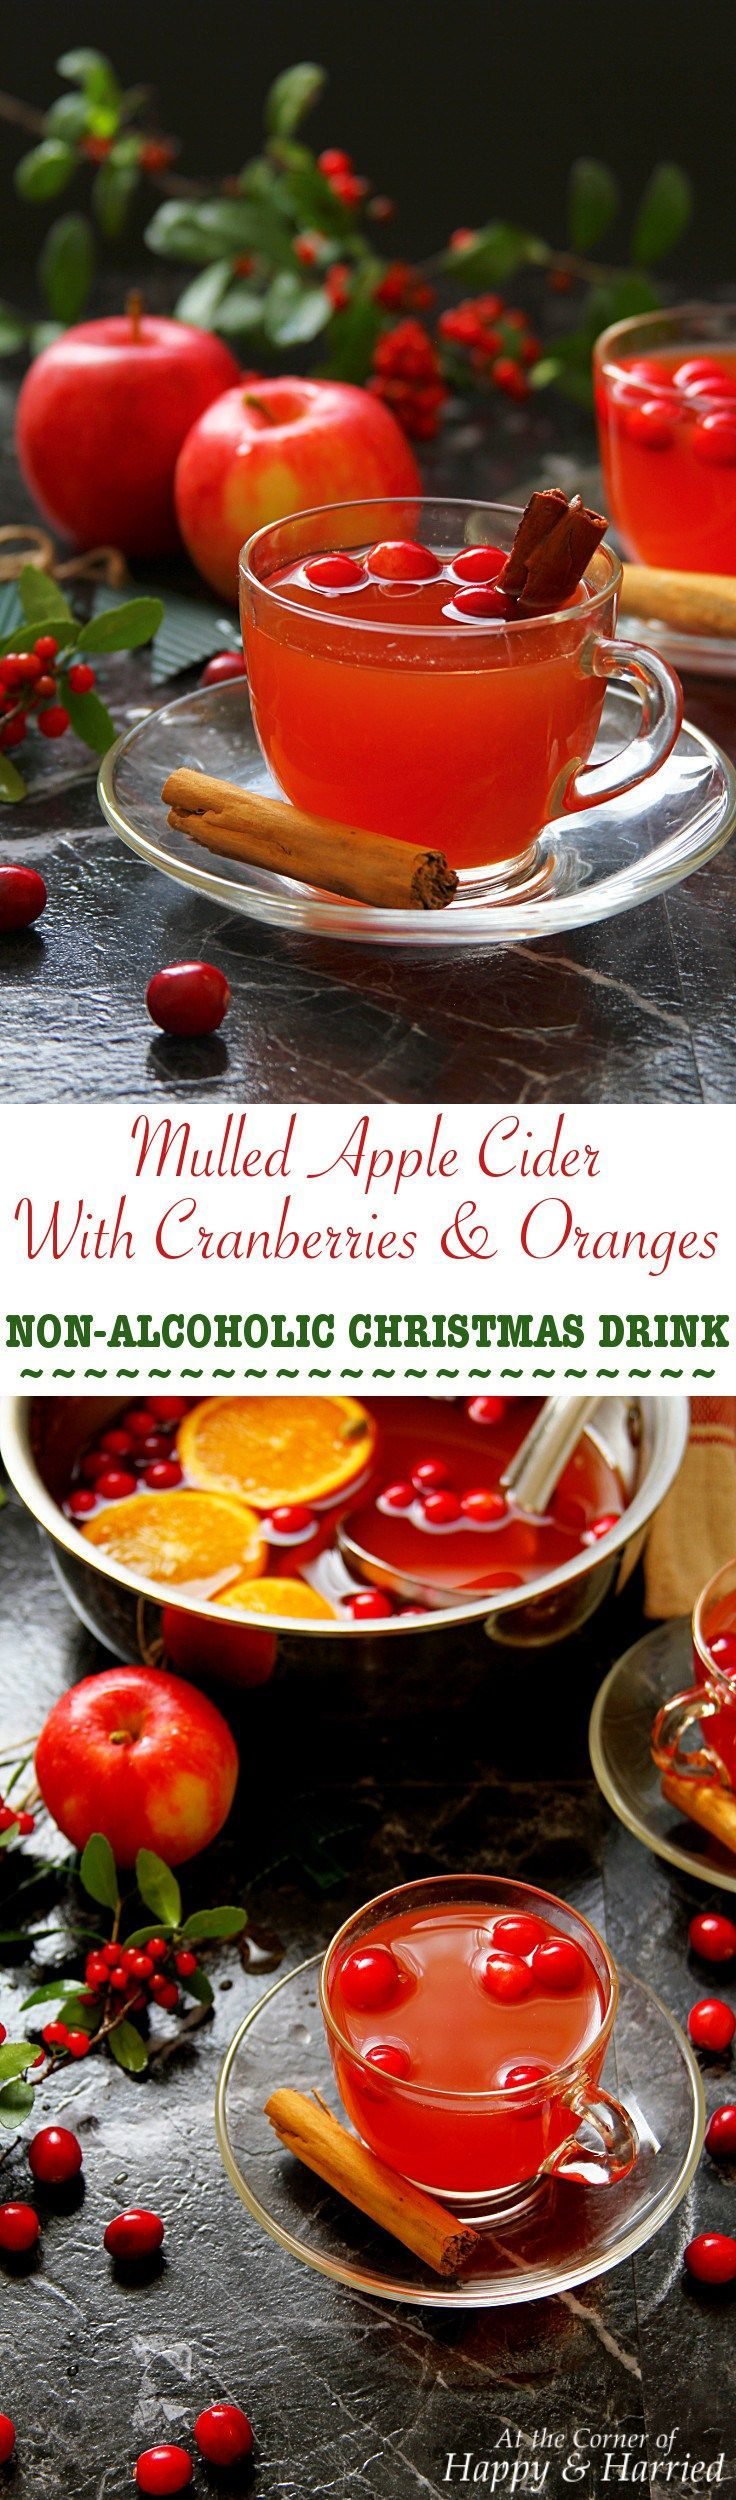 Mulled Apple Cider With Cranberries & Oranges: Non-Alcoholic Christmas Drink. #happyandharried